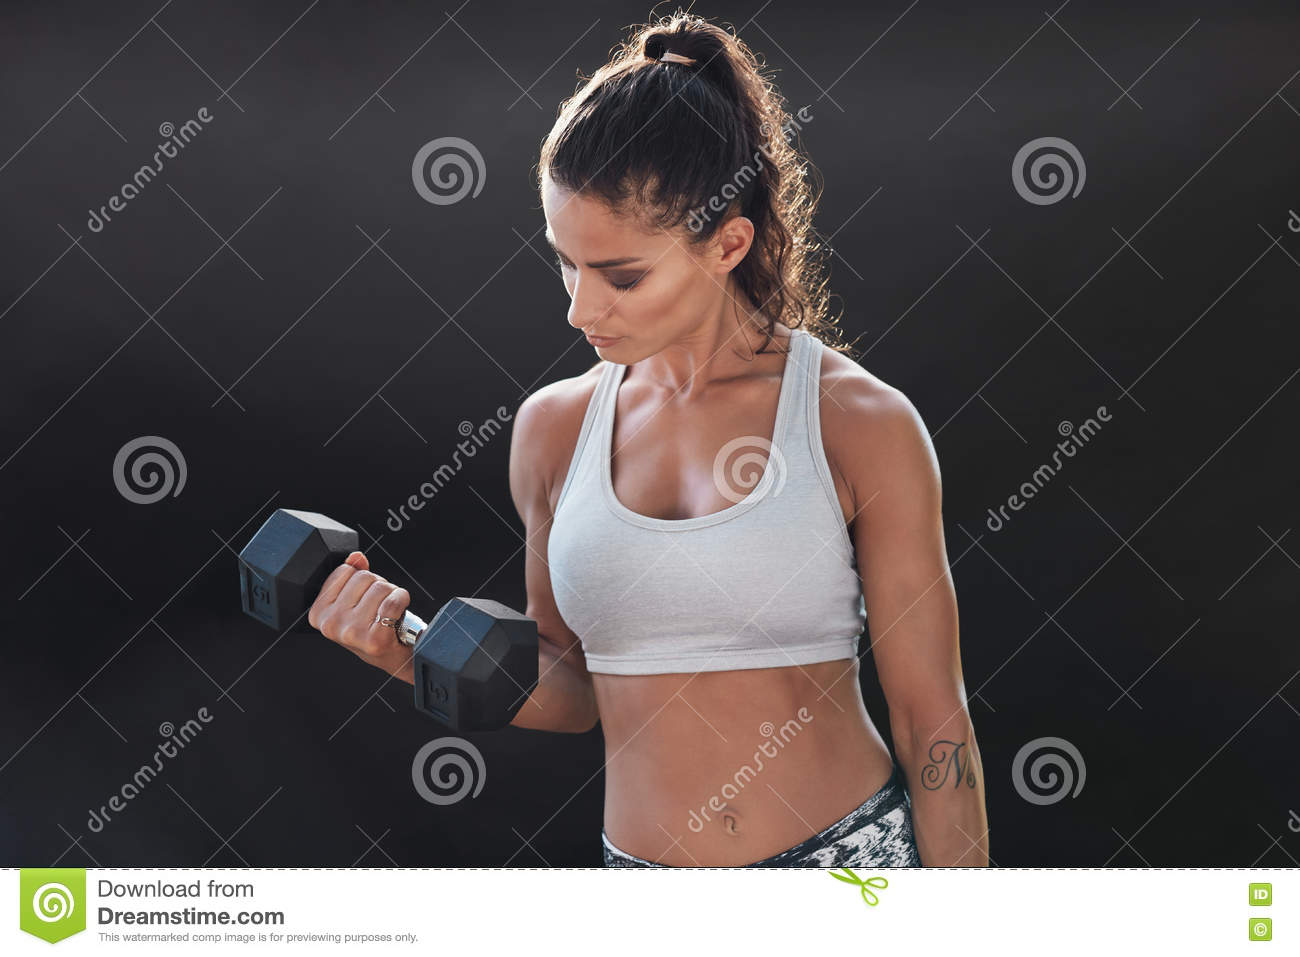 Strong and muscular female exercising with dumbbell